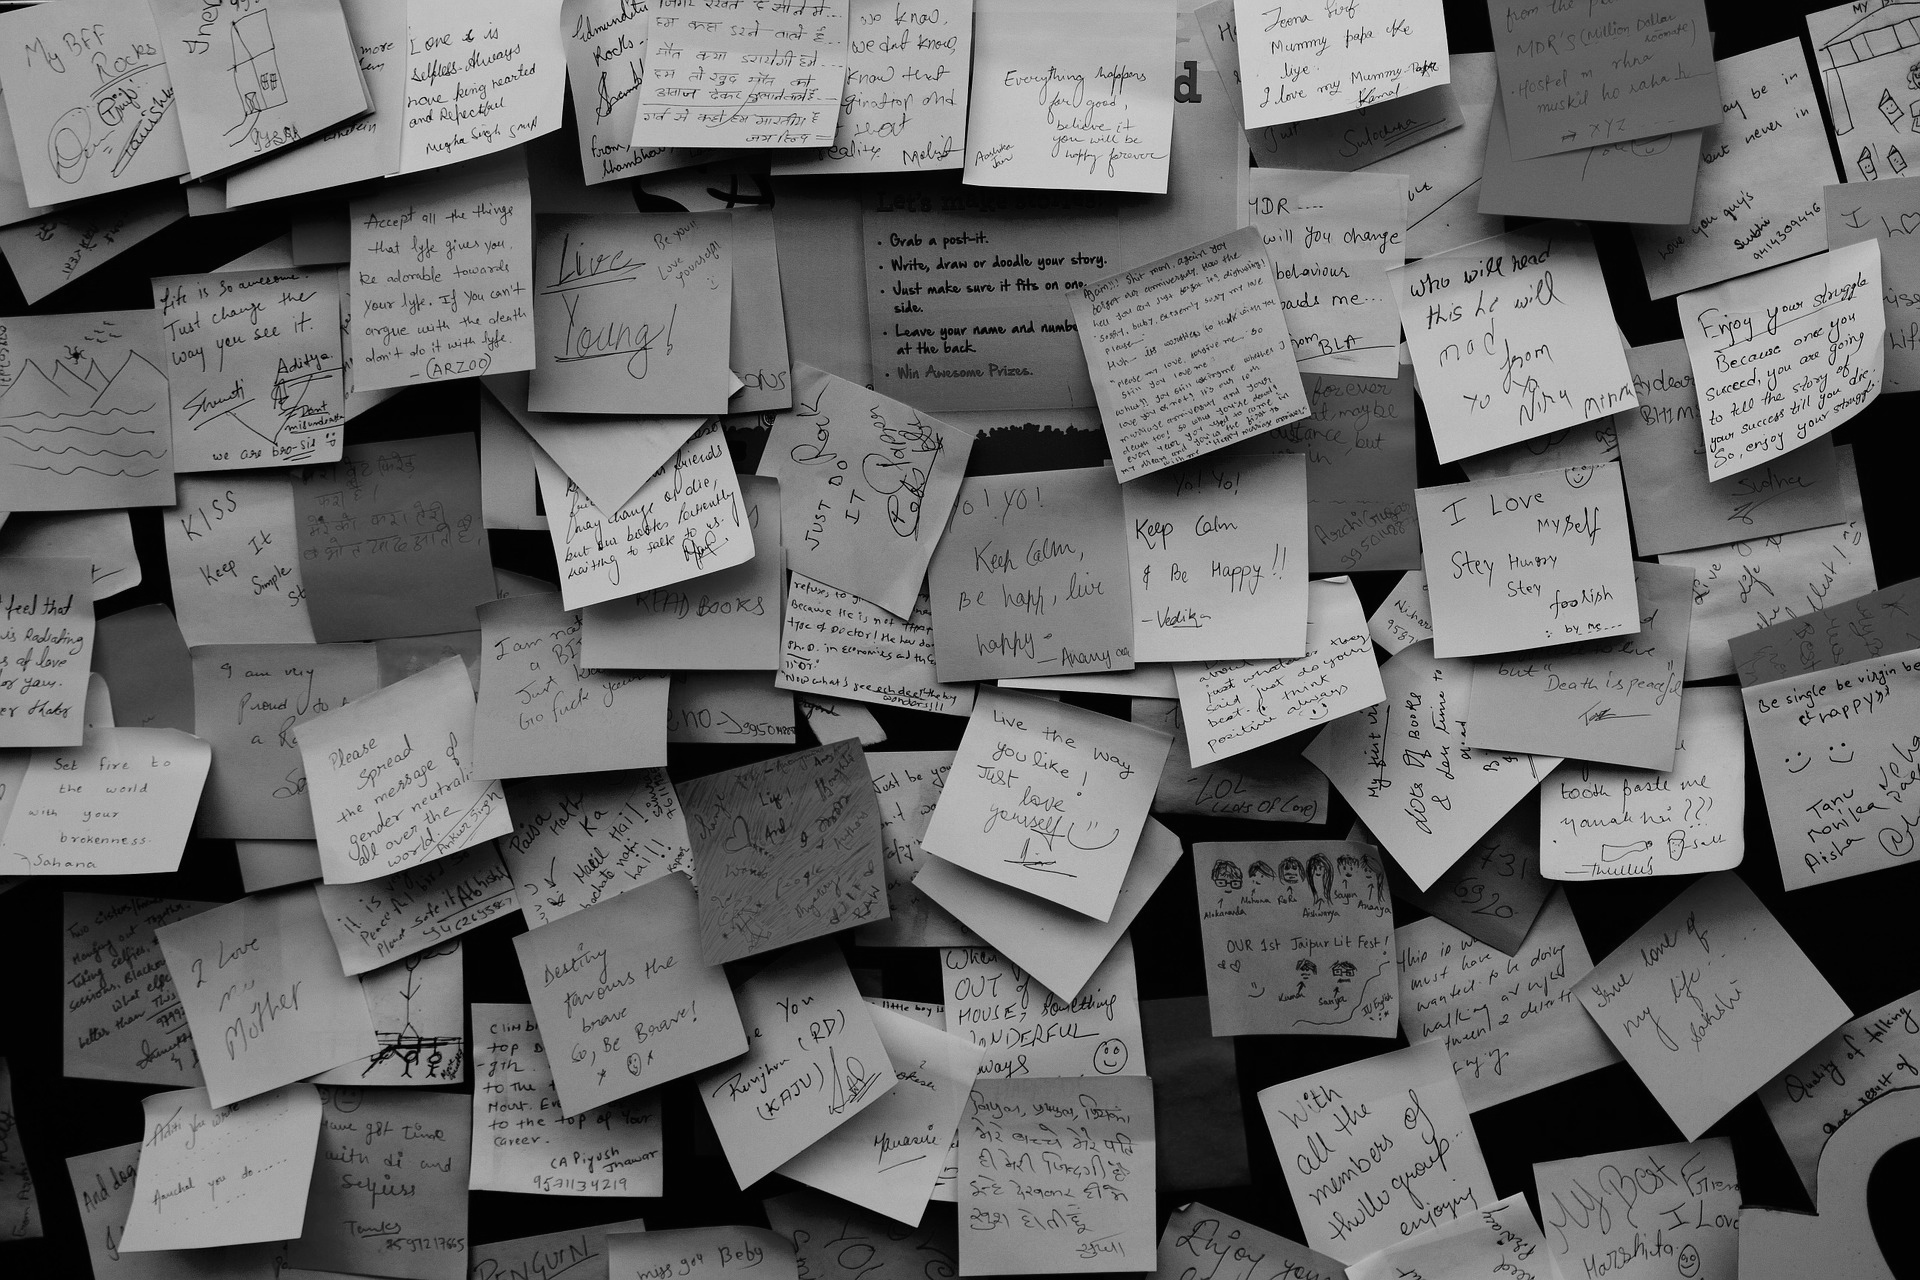 brainstormen-sticky-notes